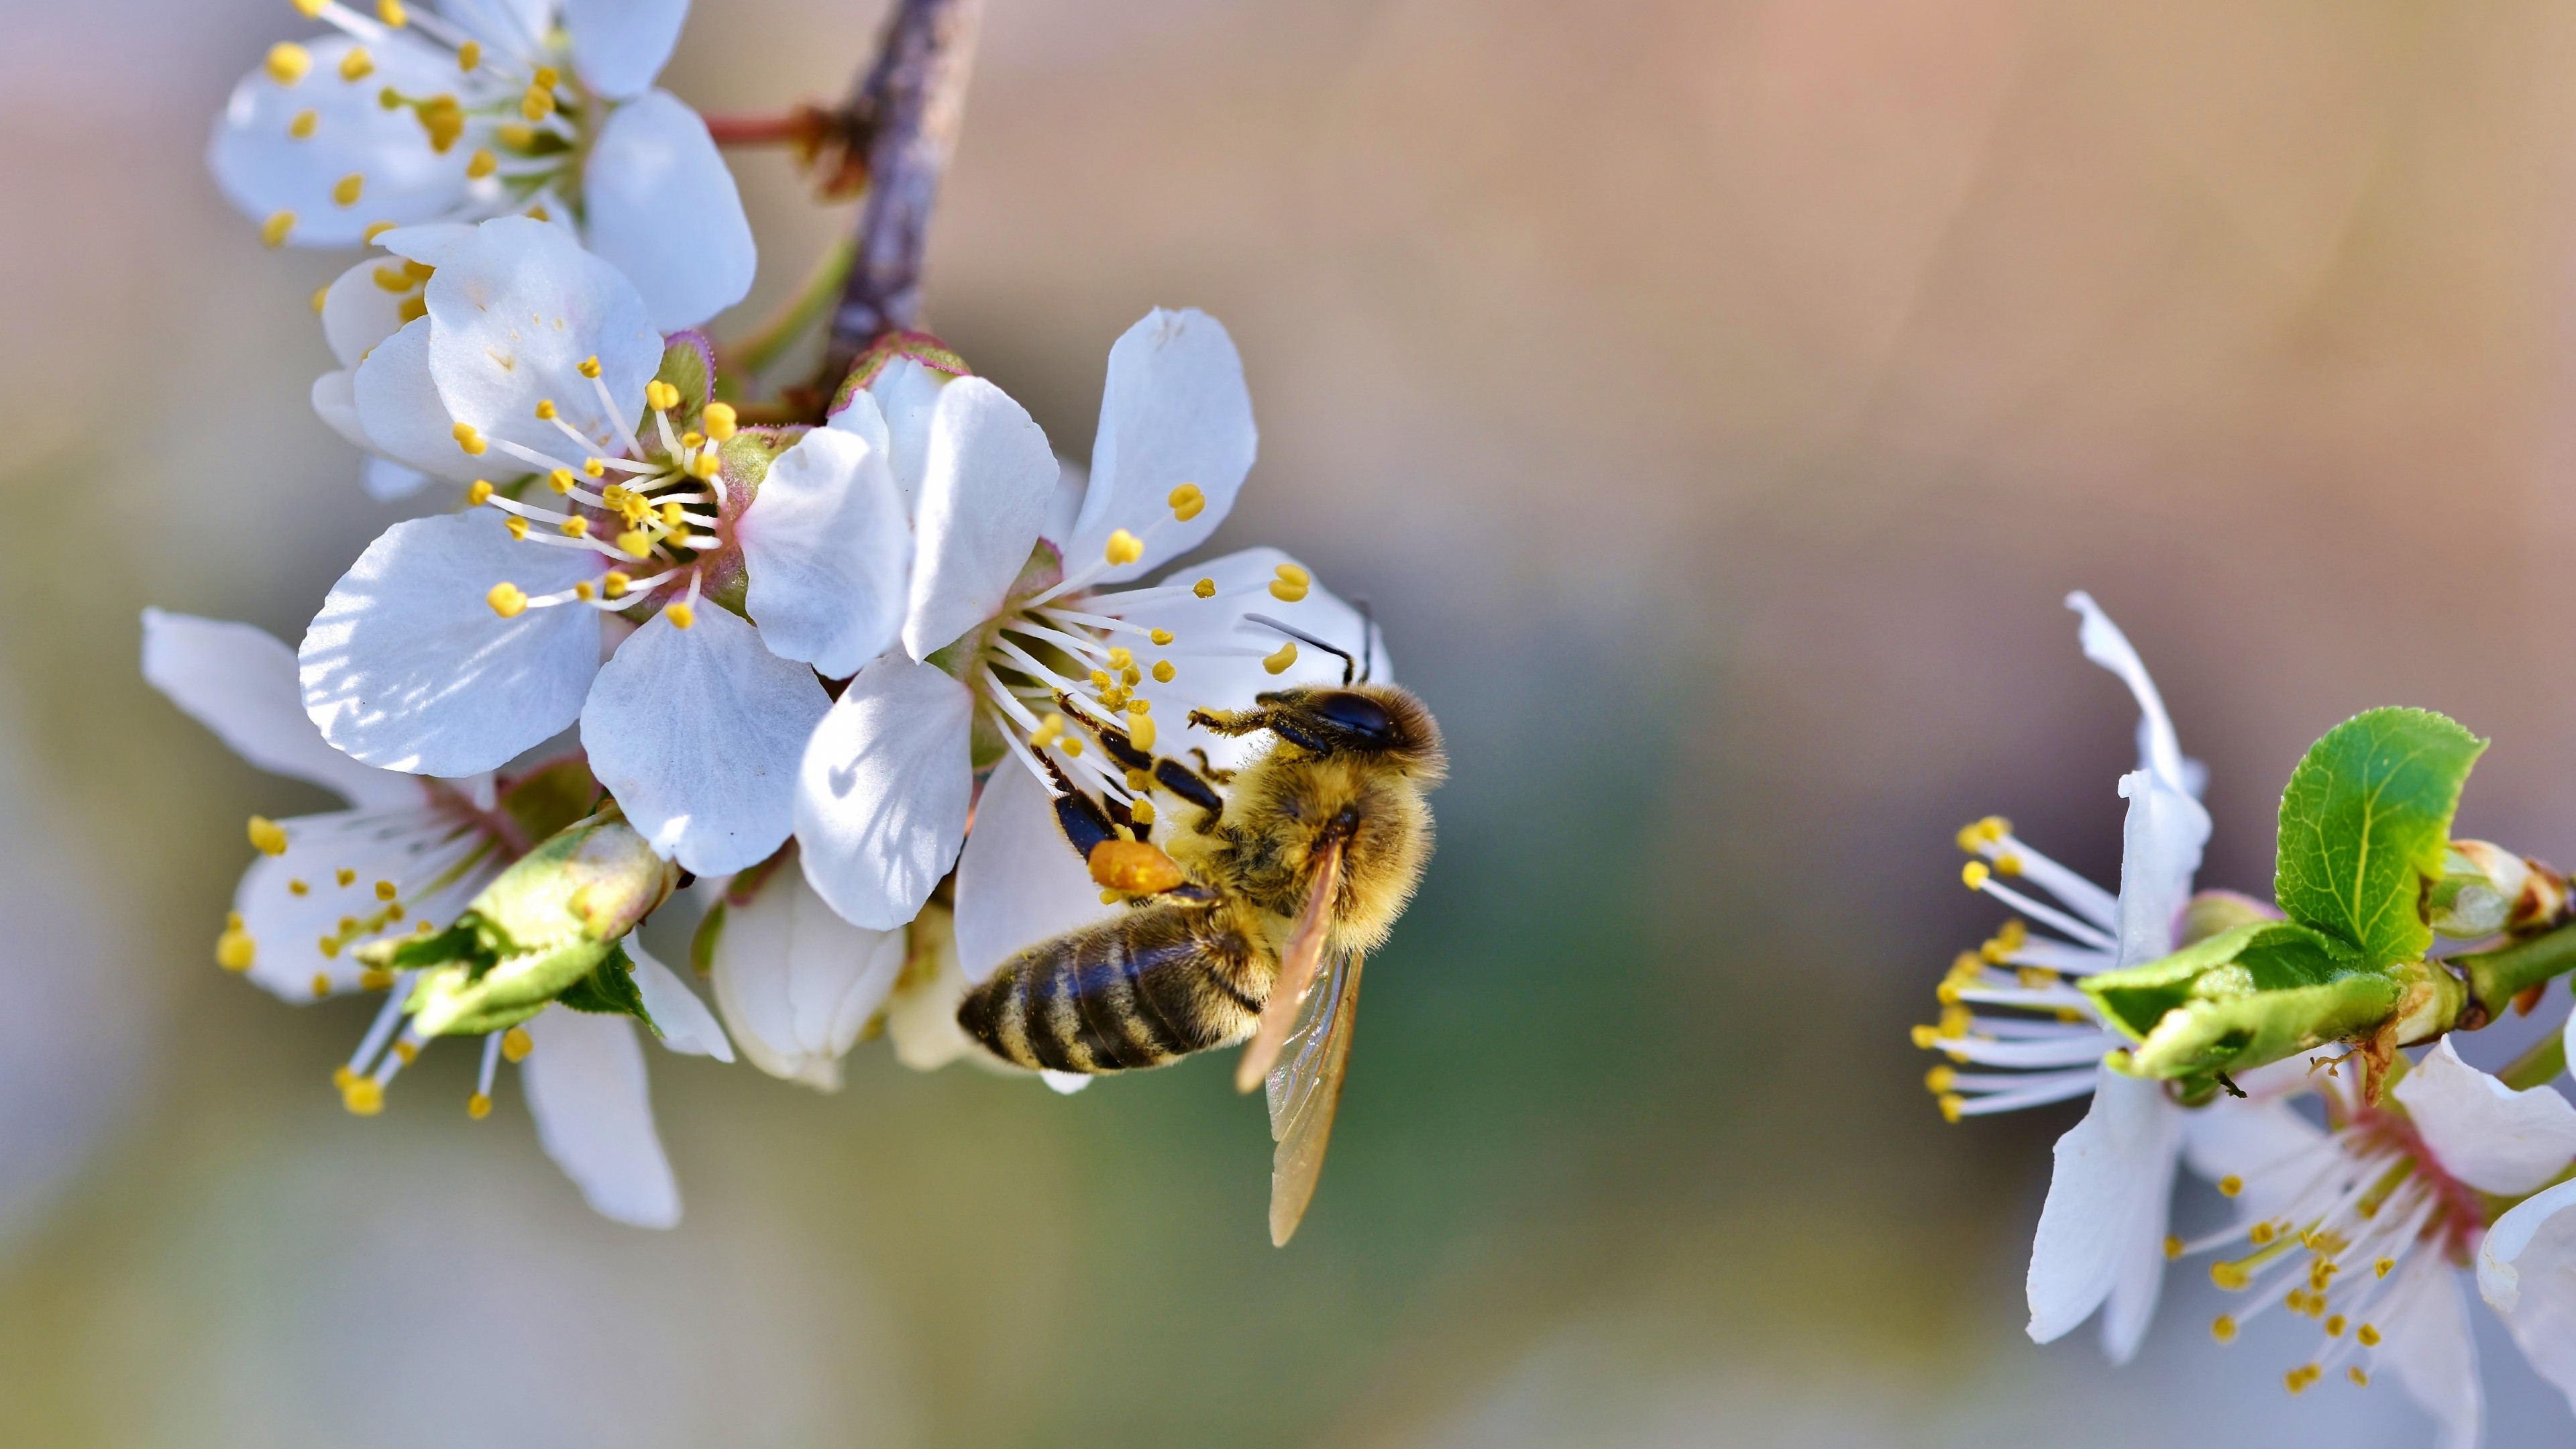 Spring, bee, blossoms, flower wallpaper 3840x2160